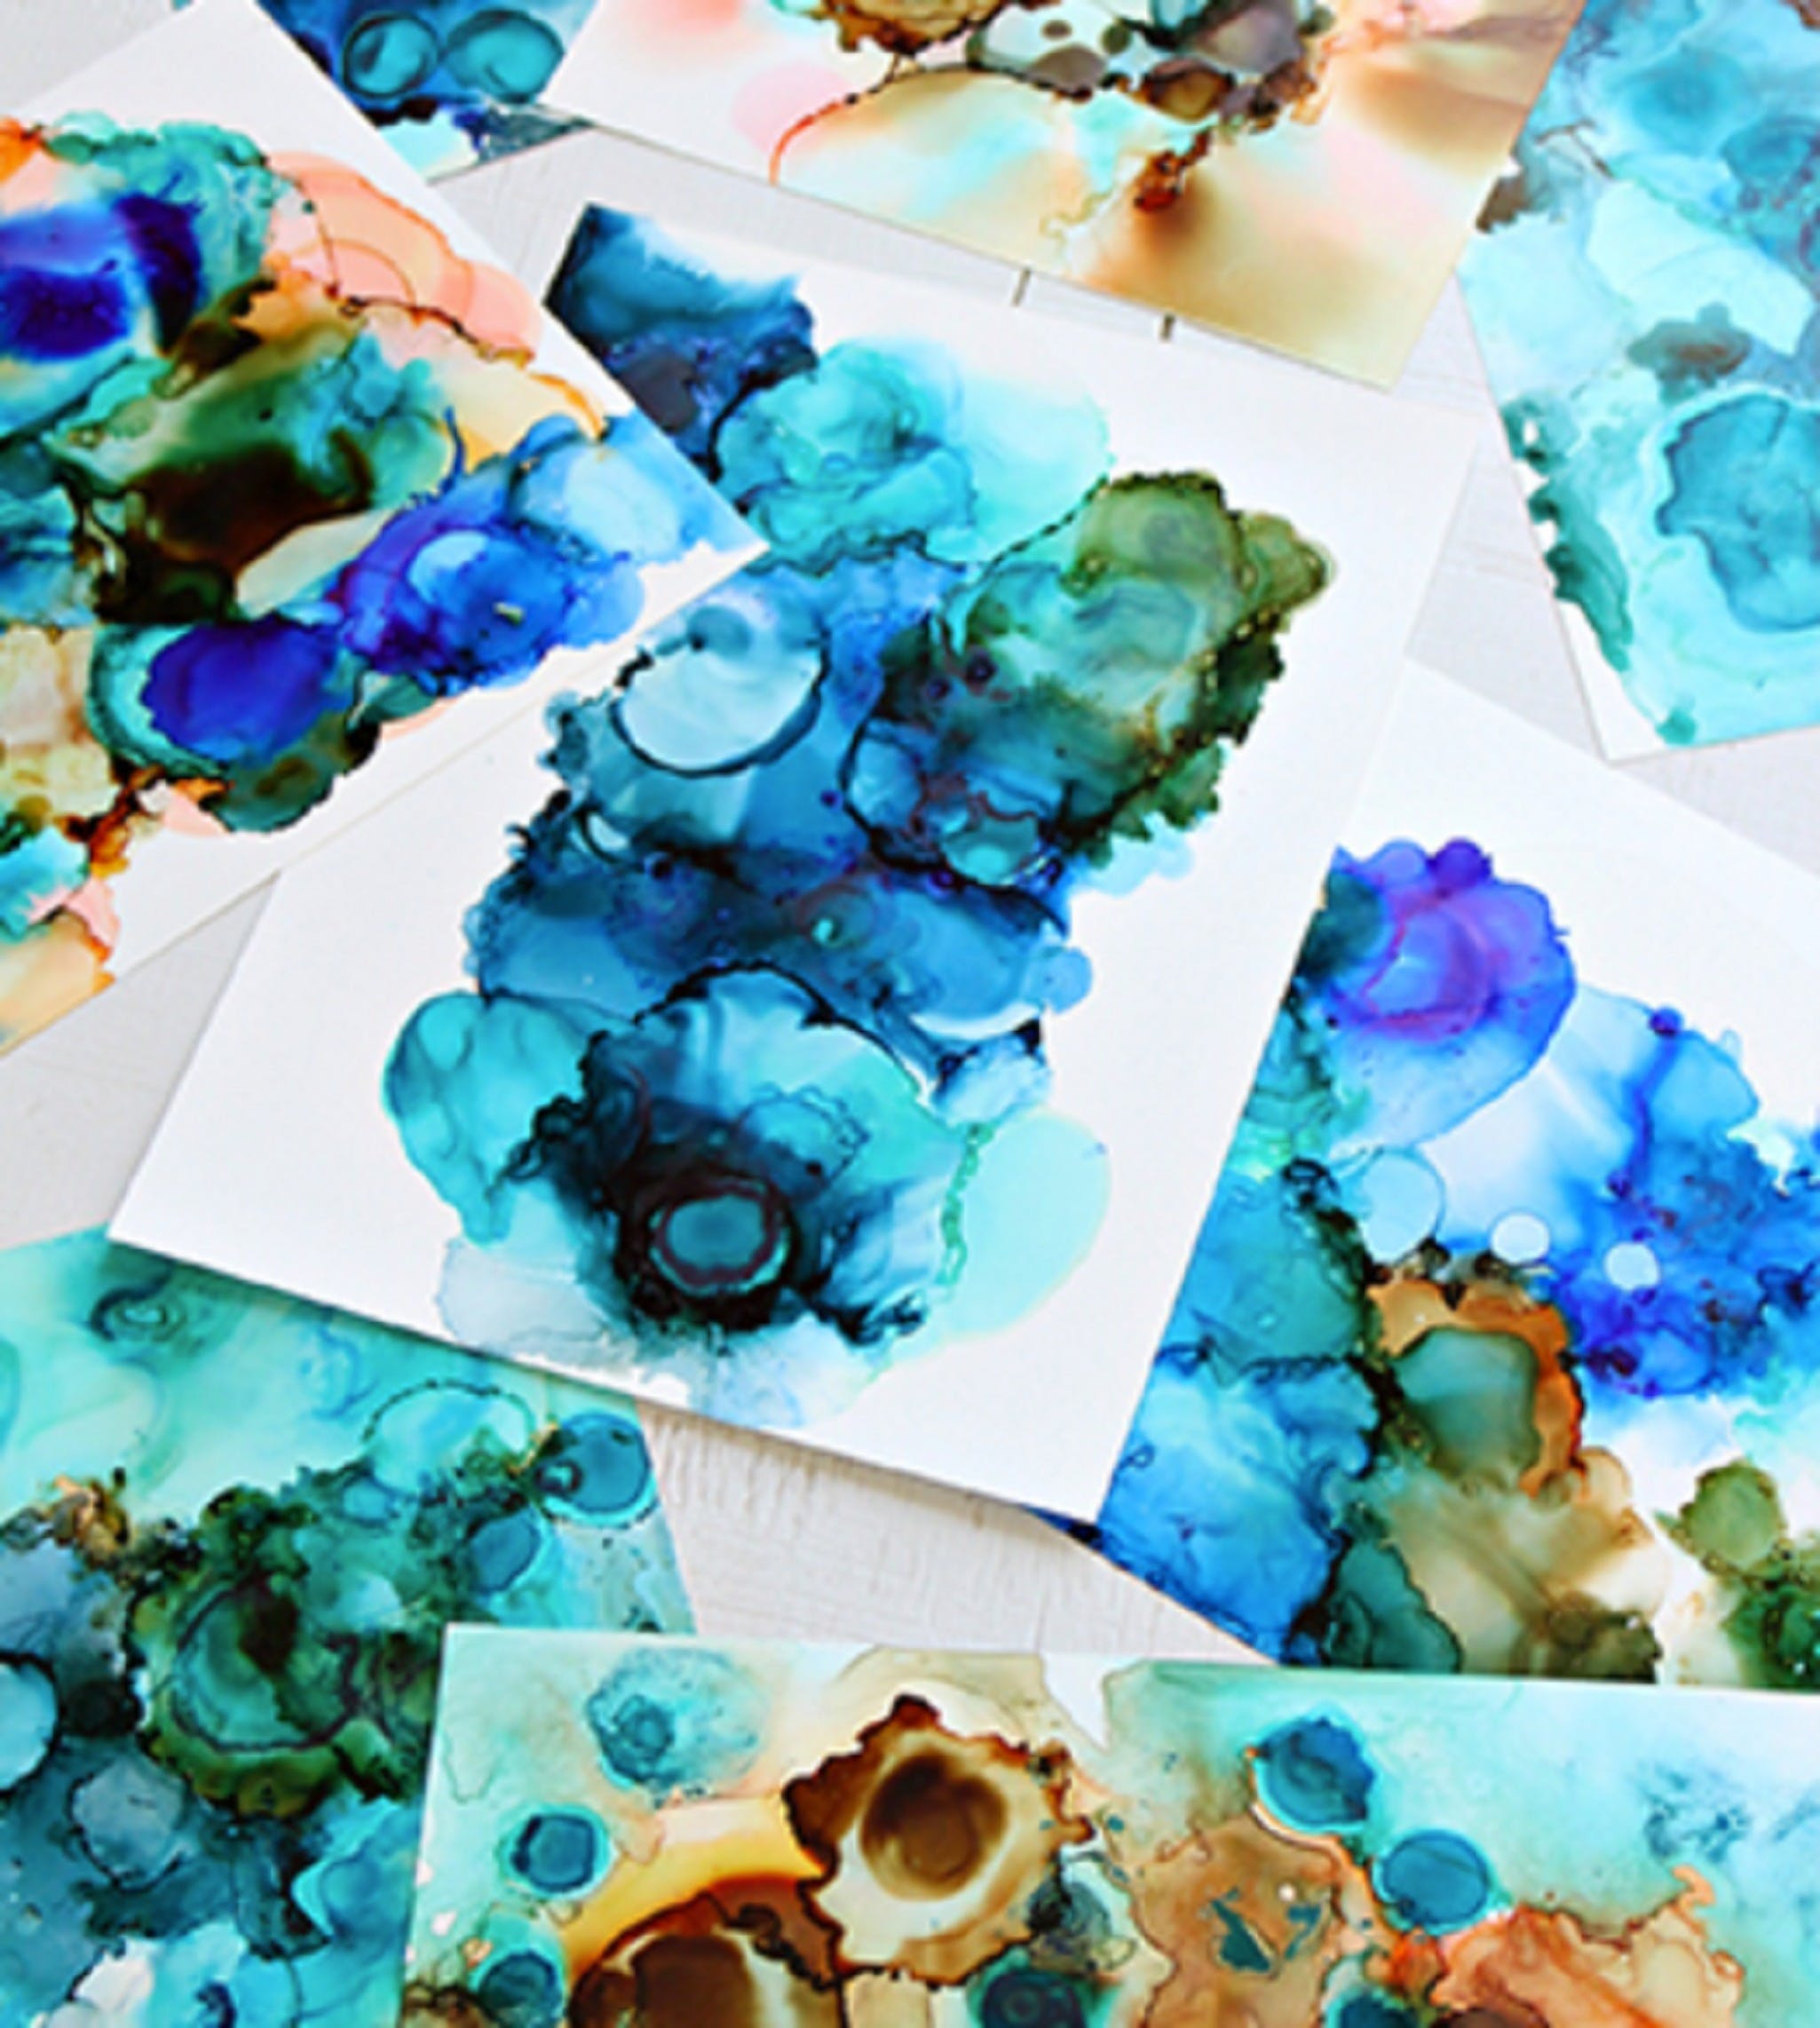 Alcohol Ink Art Class - WA Accommodation